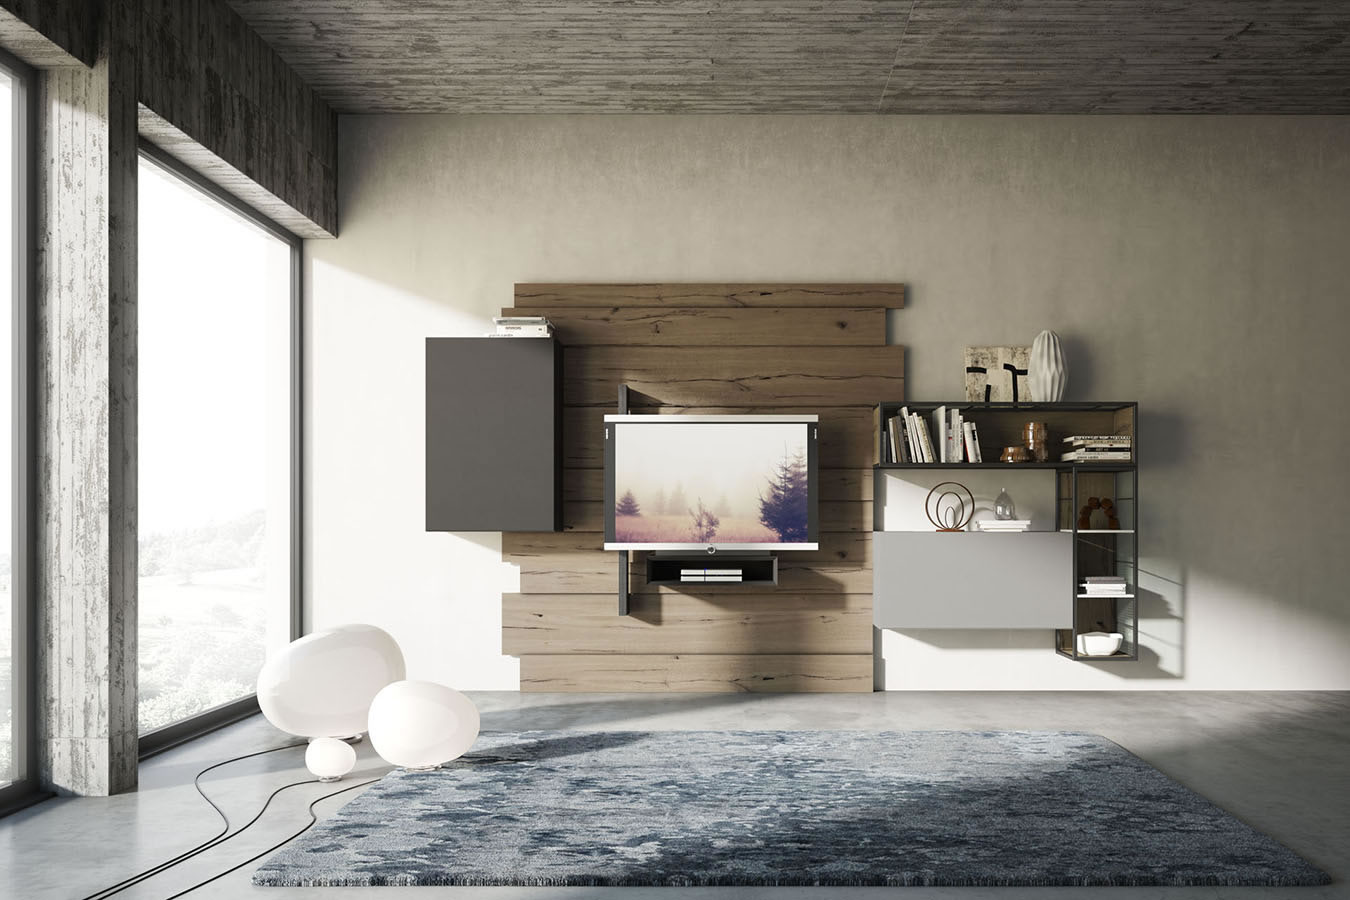 Modern Sofa Italian Design : ... Italian wall units with a vintage flair, new Italian furniture designs